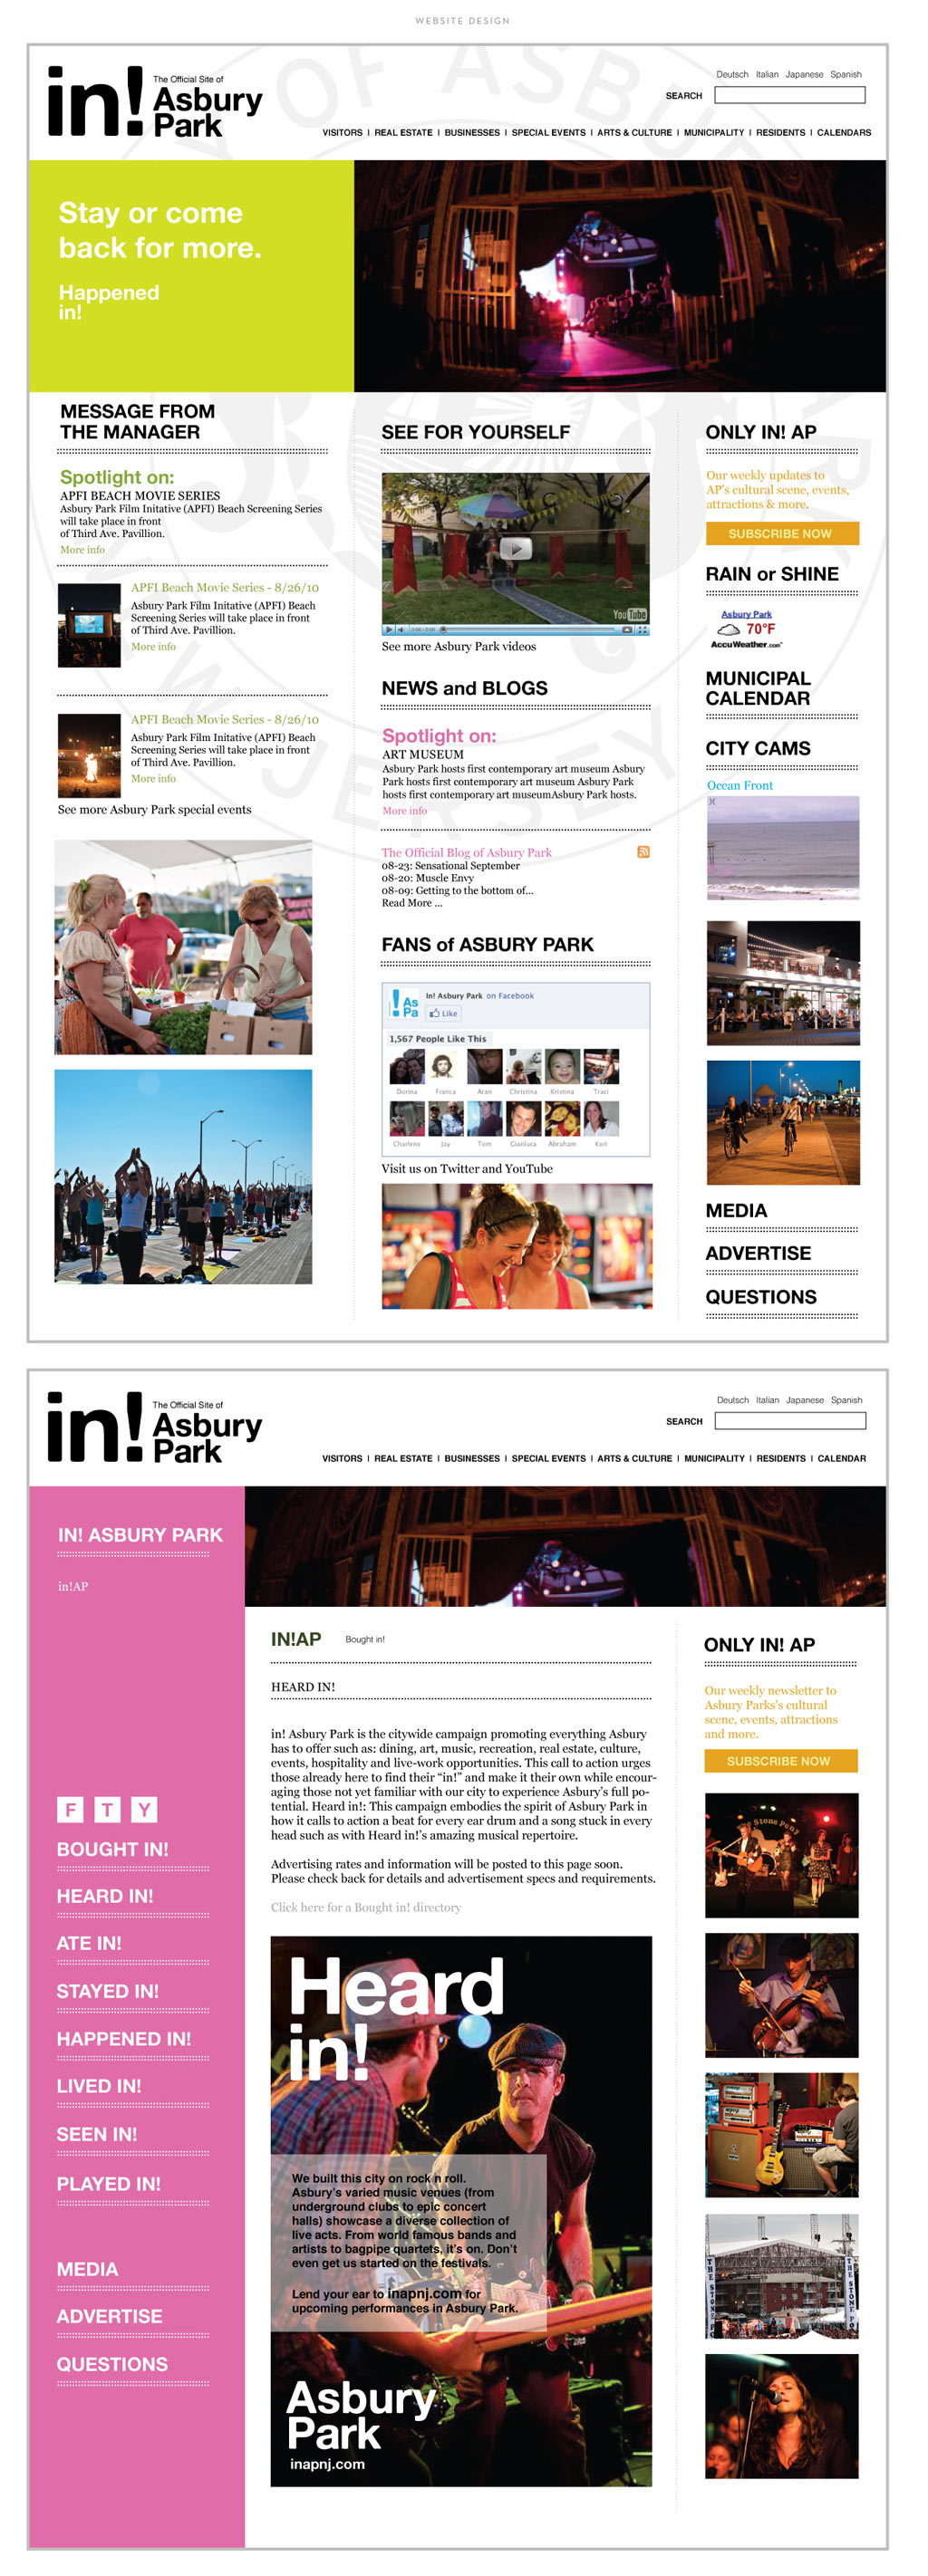 City of Asbury Park web design by M studio